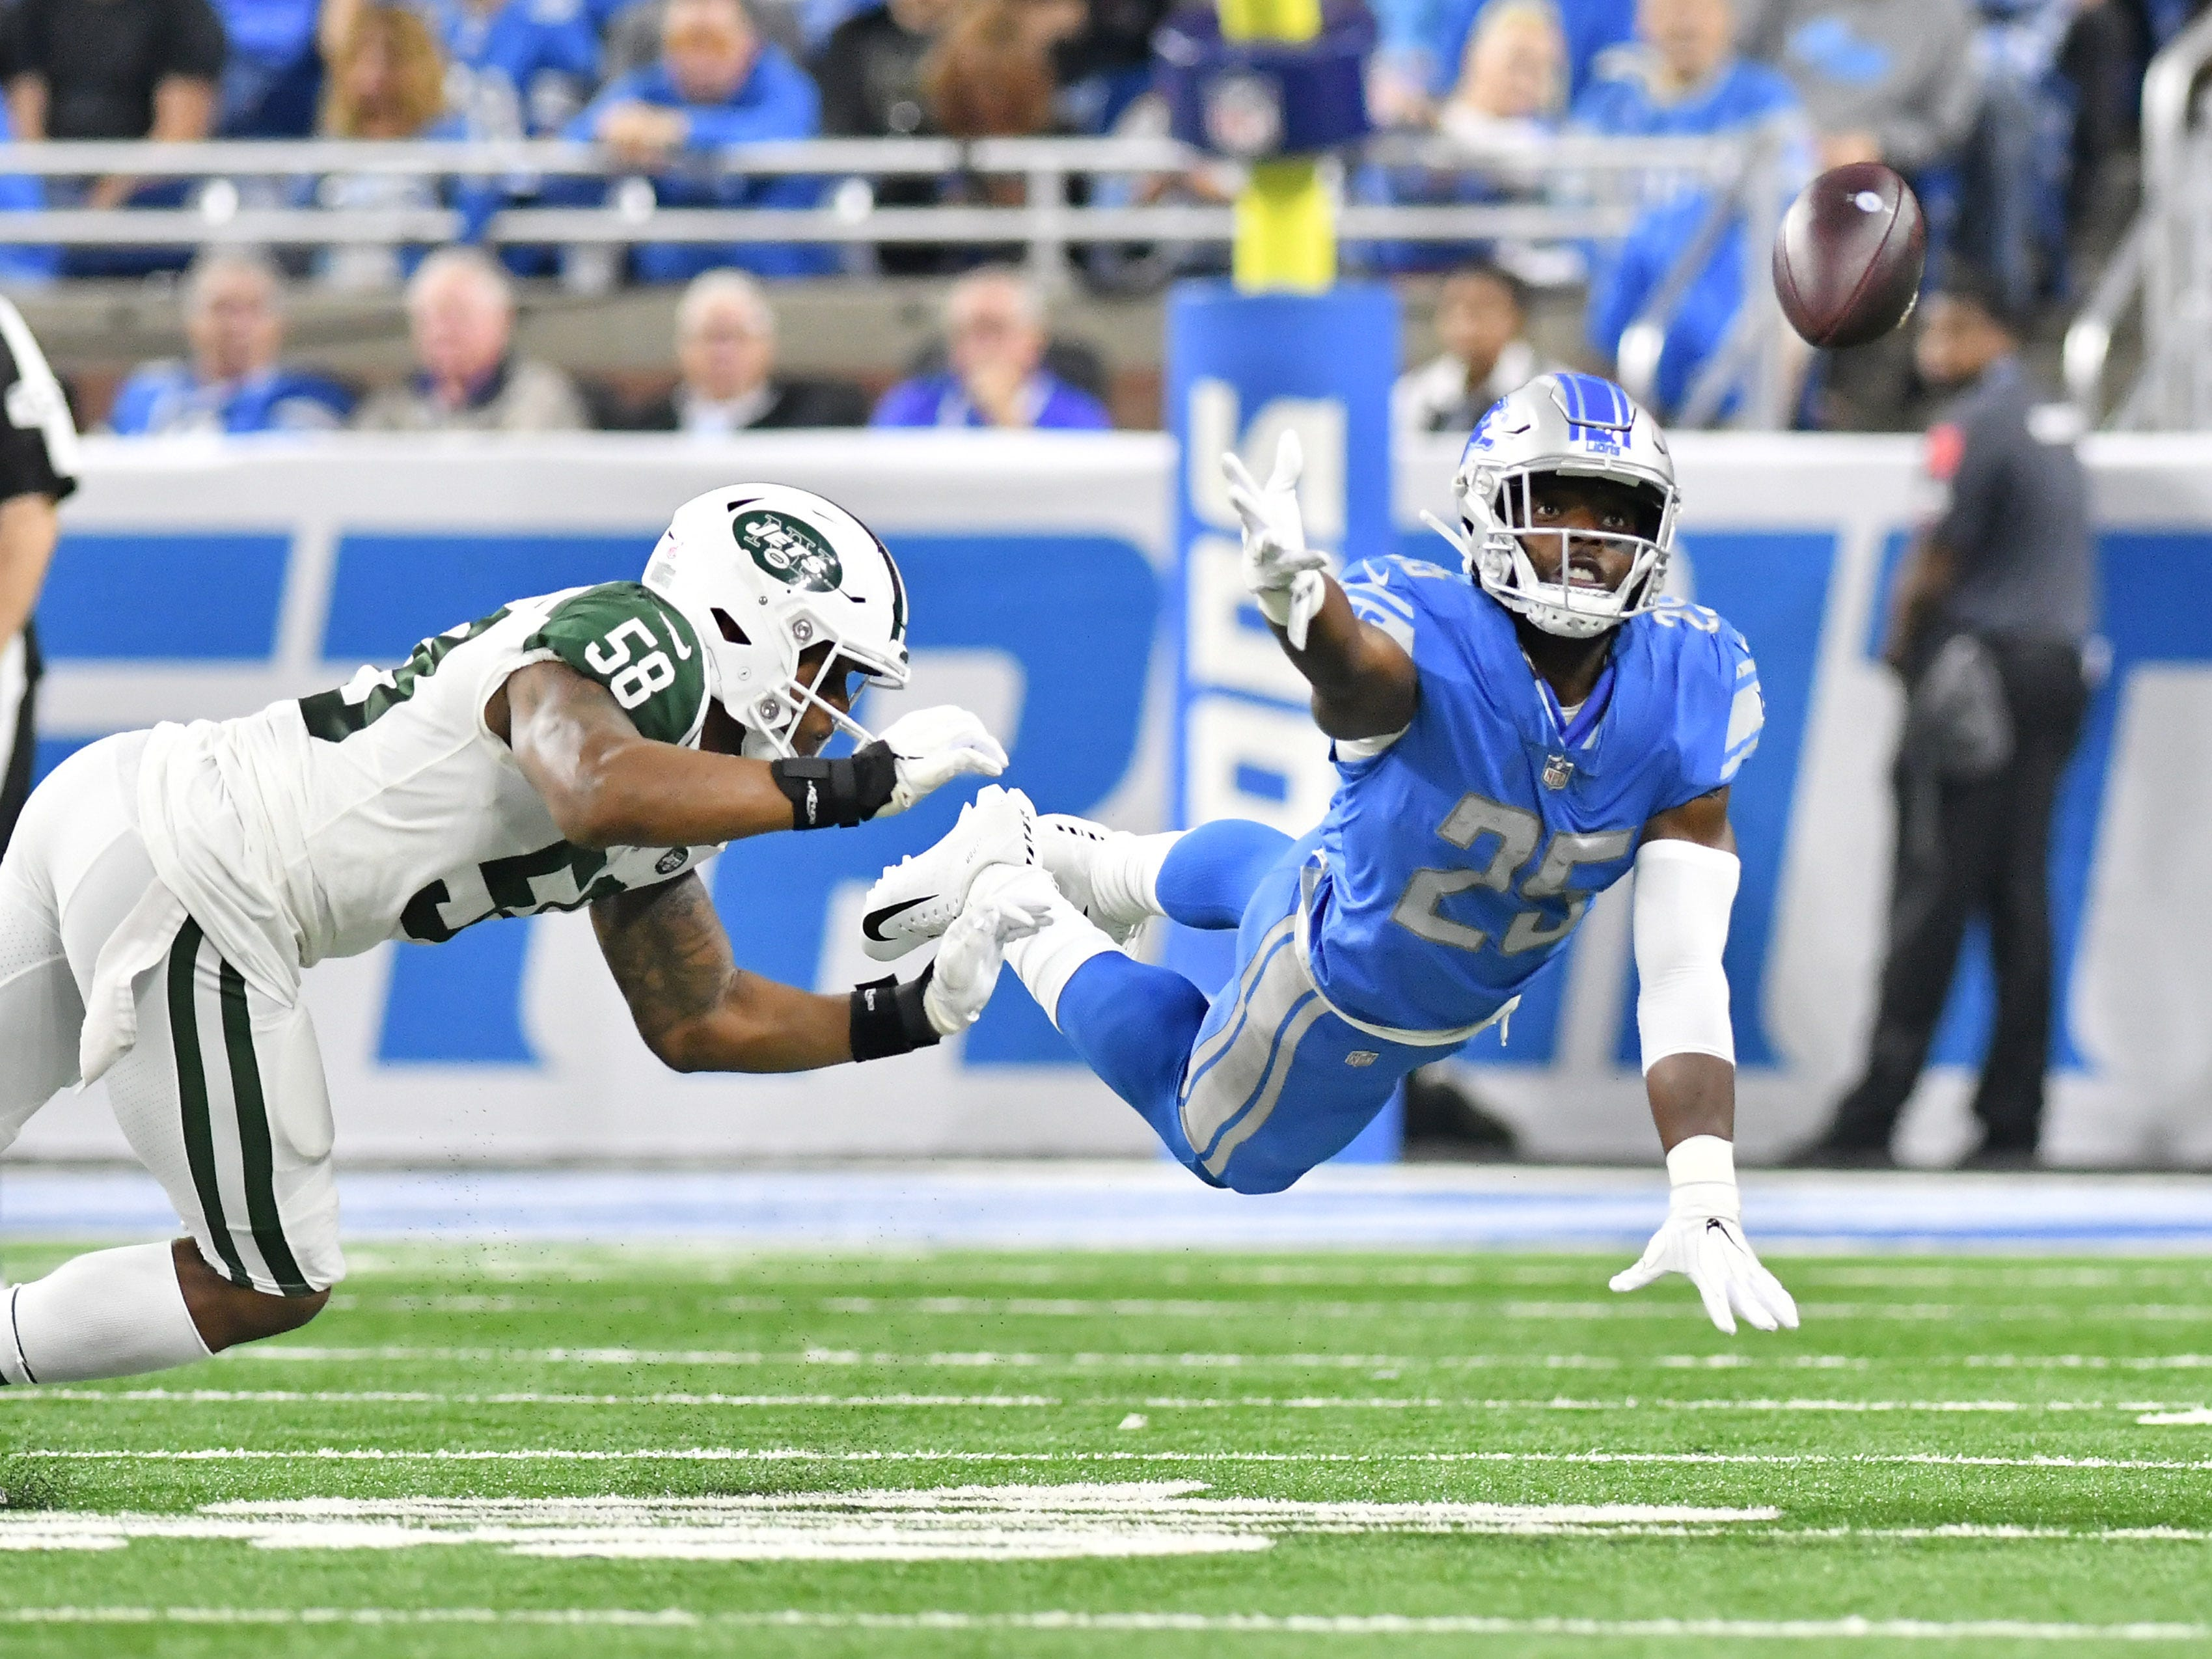 Lions RB Theo Riddick cannot get to this short pass in the first half.